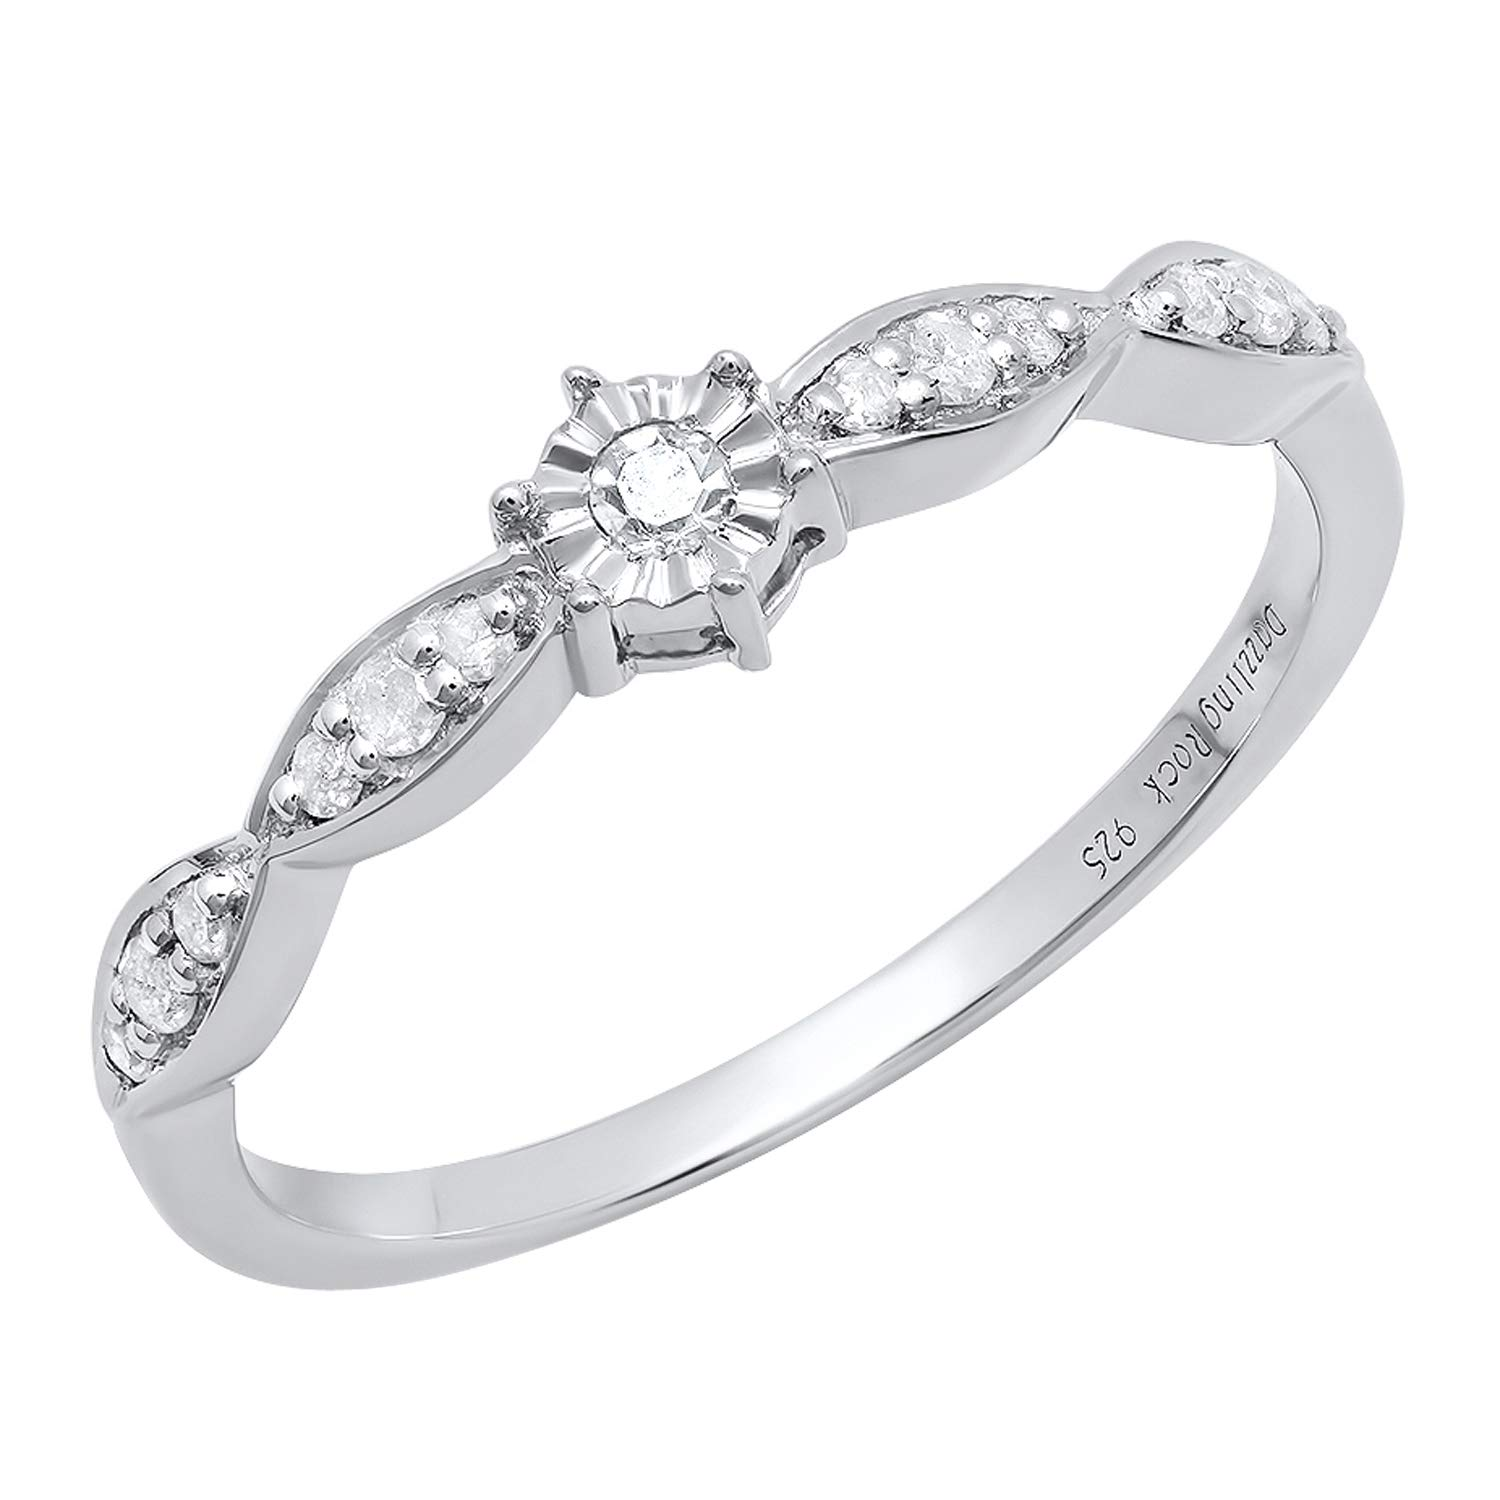 ctw Round White Diamond Bridal Engagement Ring Sterling Silver Dazzlingrock Collection 0.20 Carat